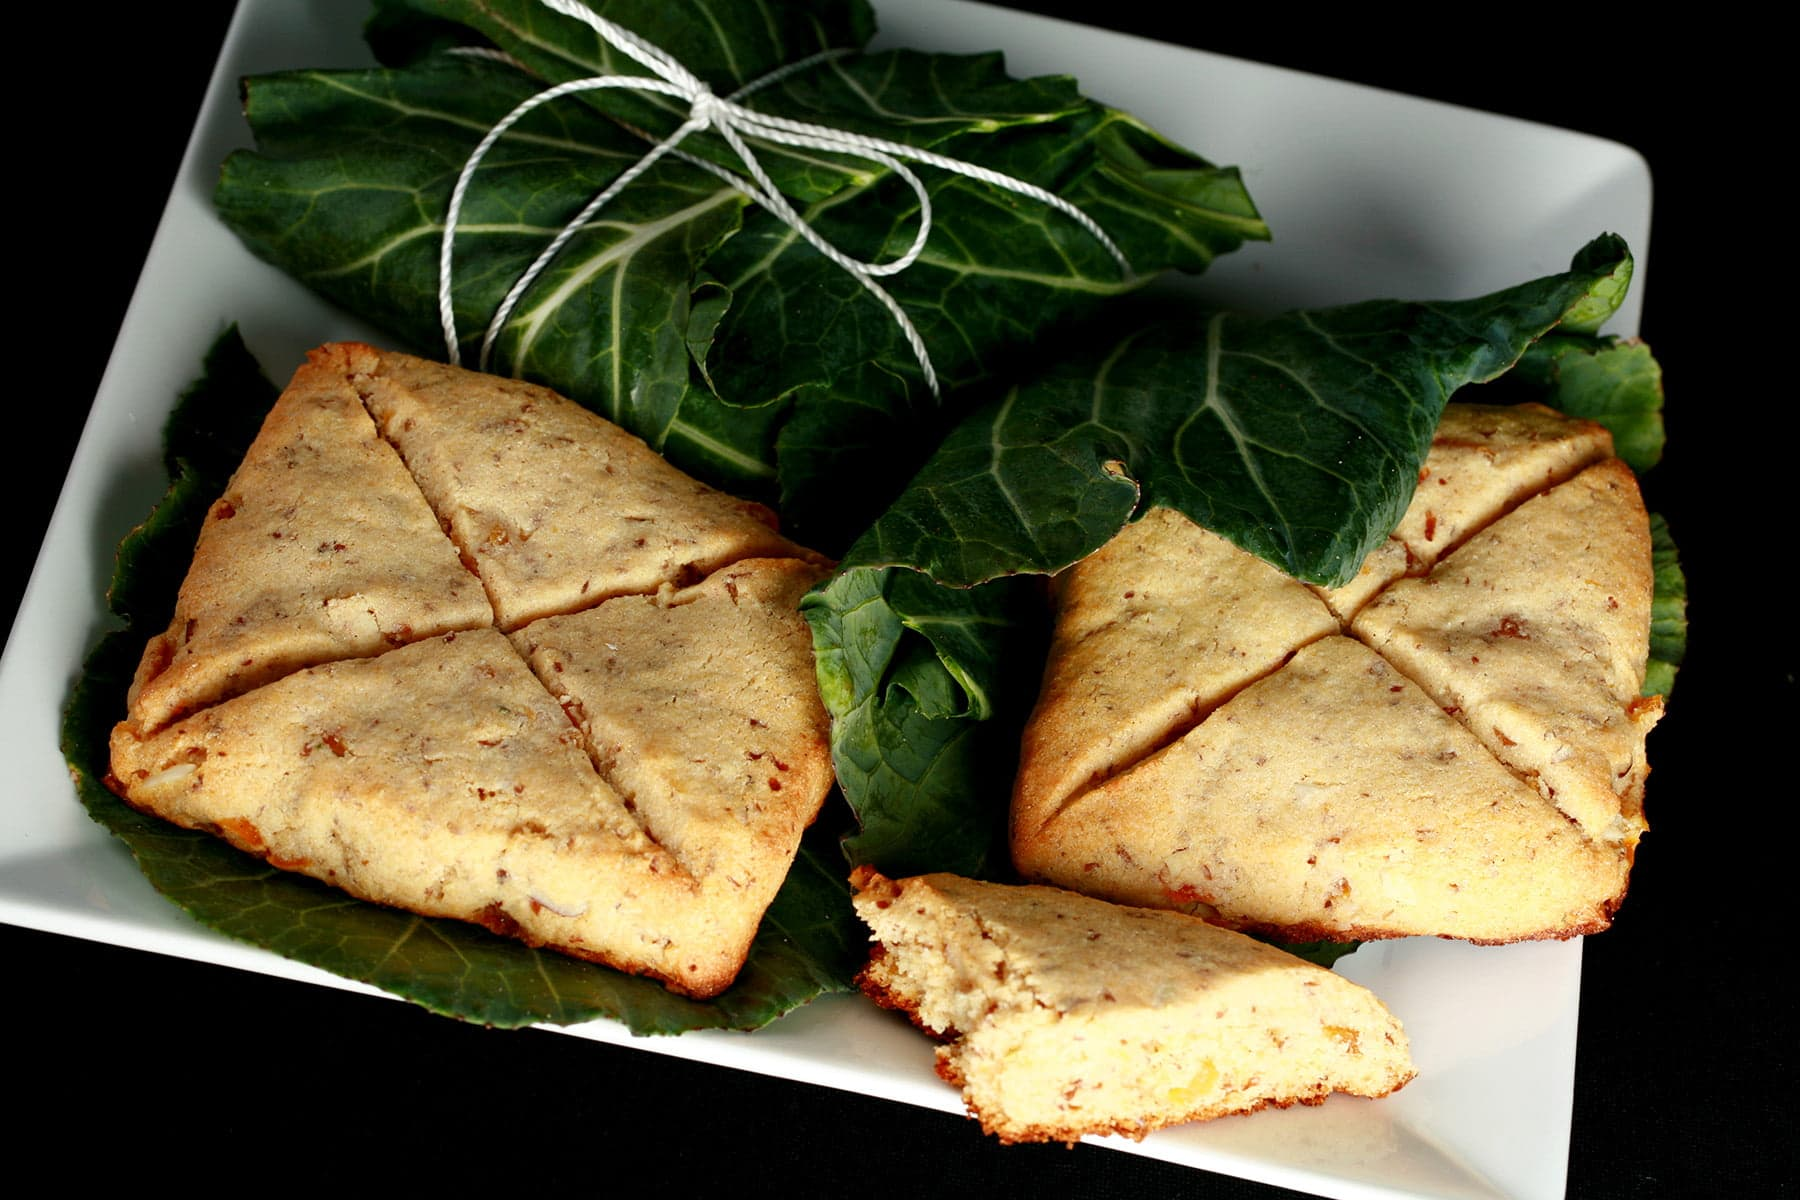 A square white plate displays 3 pieces of Lembas bread. Two of the square biscuits - each marked with an X cut - are unwrapped, while the 3 is still neatly packaged in a large leaf, and tied with twine.